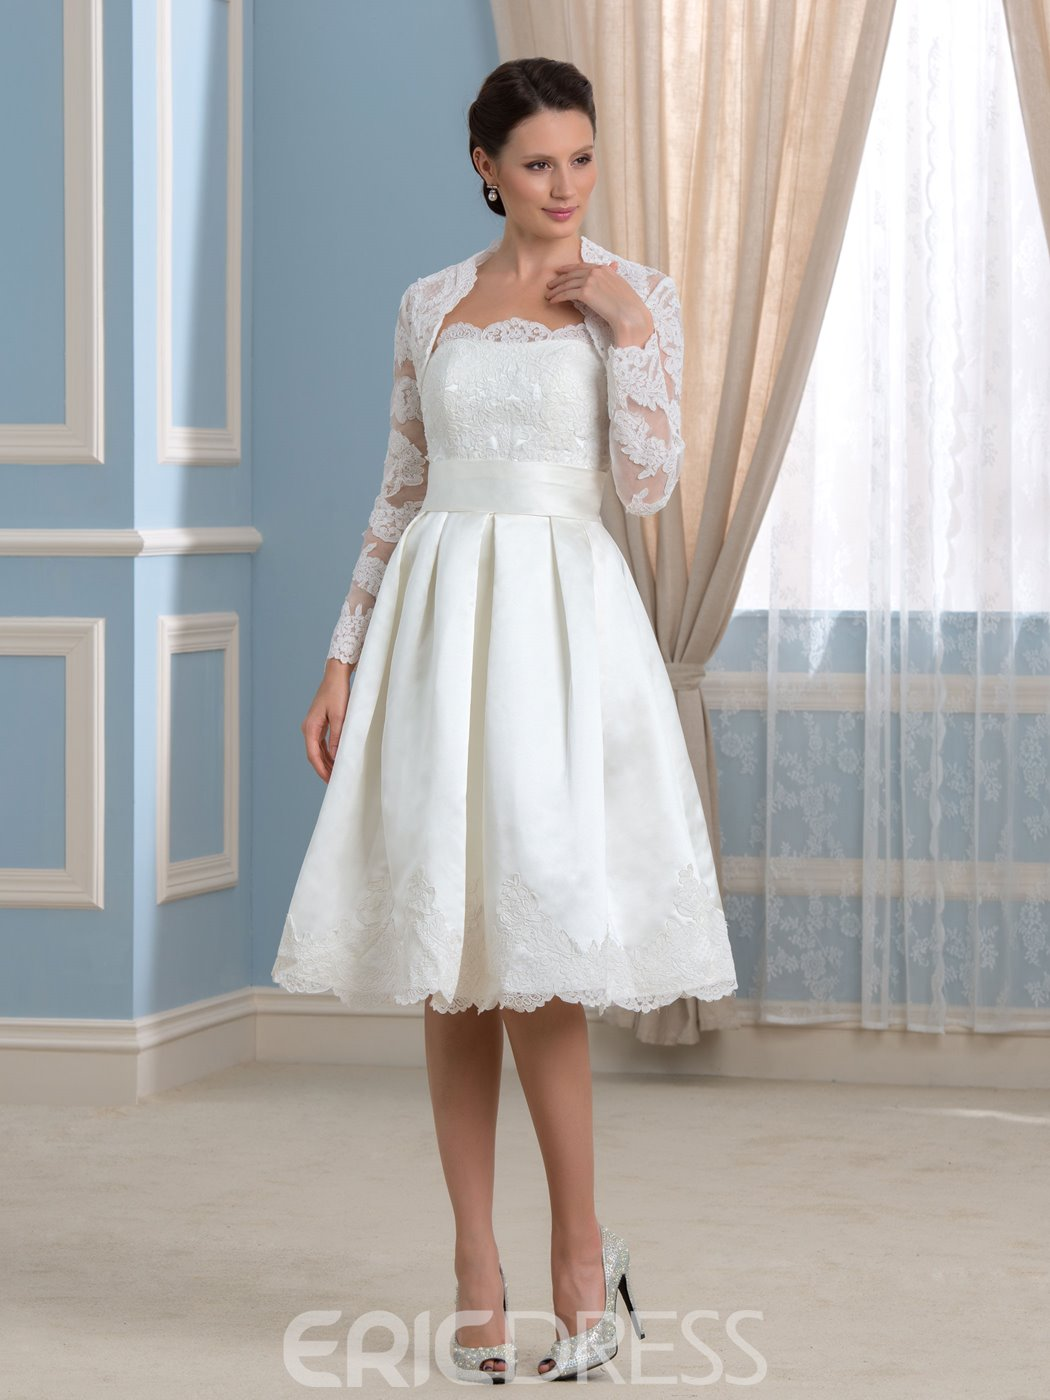 Ericdress Beautiful Strapless Appliques Knee Length Wedding Dress